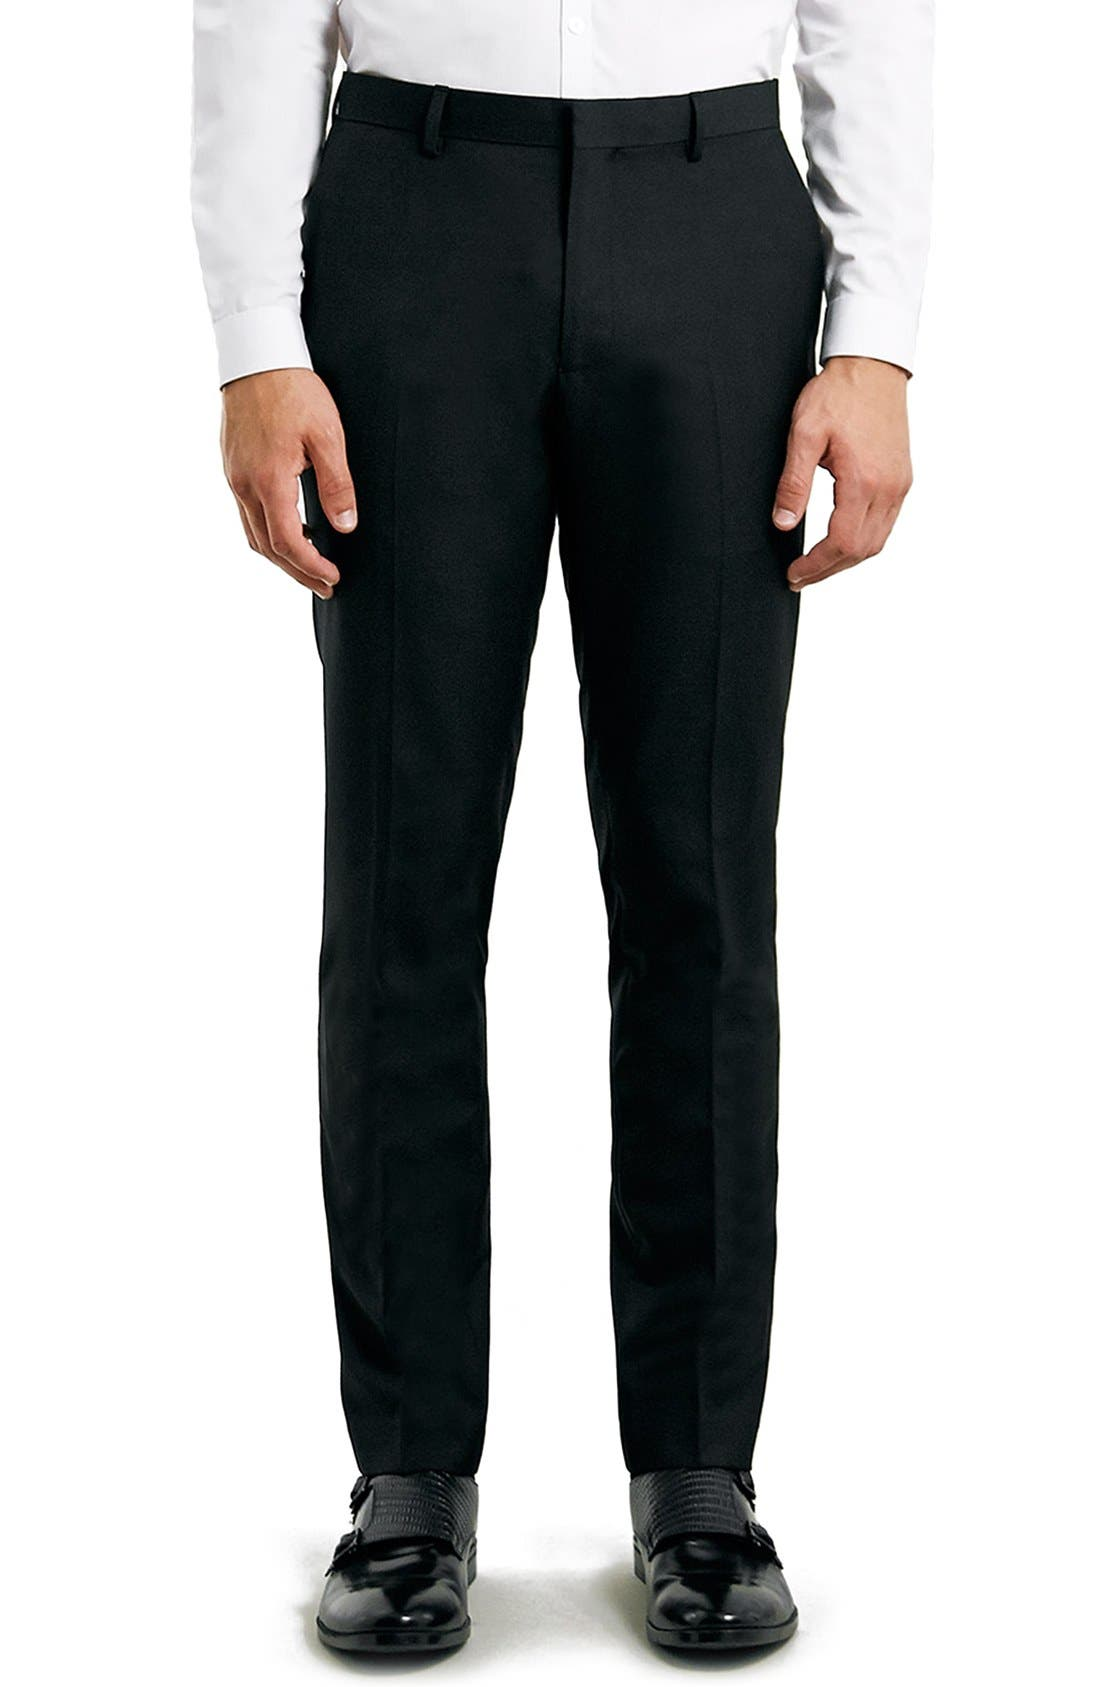 Topman Skinny Fit Black Suit Trousers